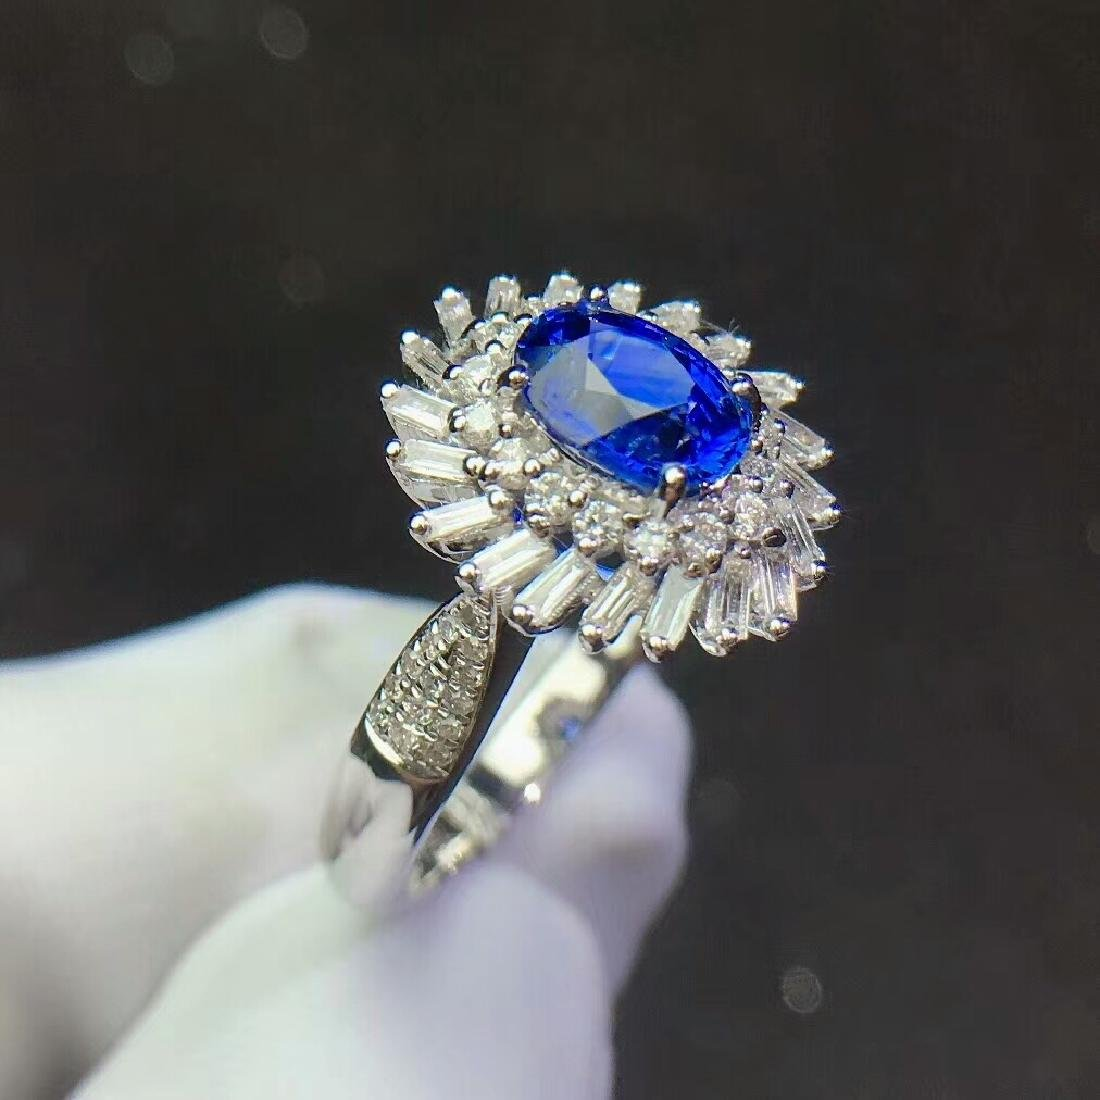 1.3ct Sapphire Ring in 18kt White Gold - 4